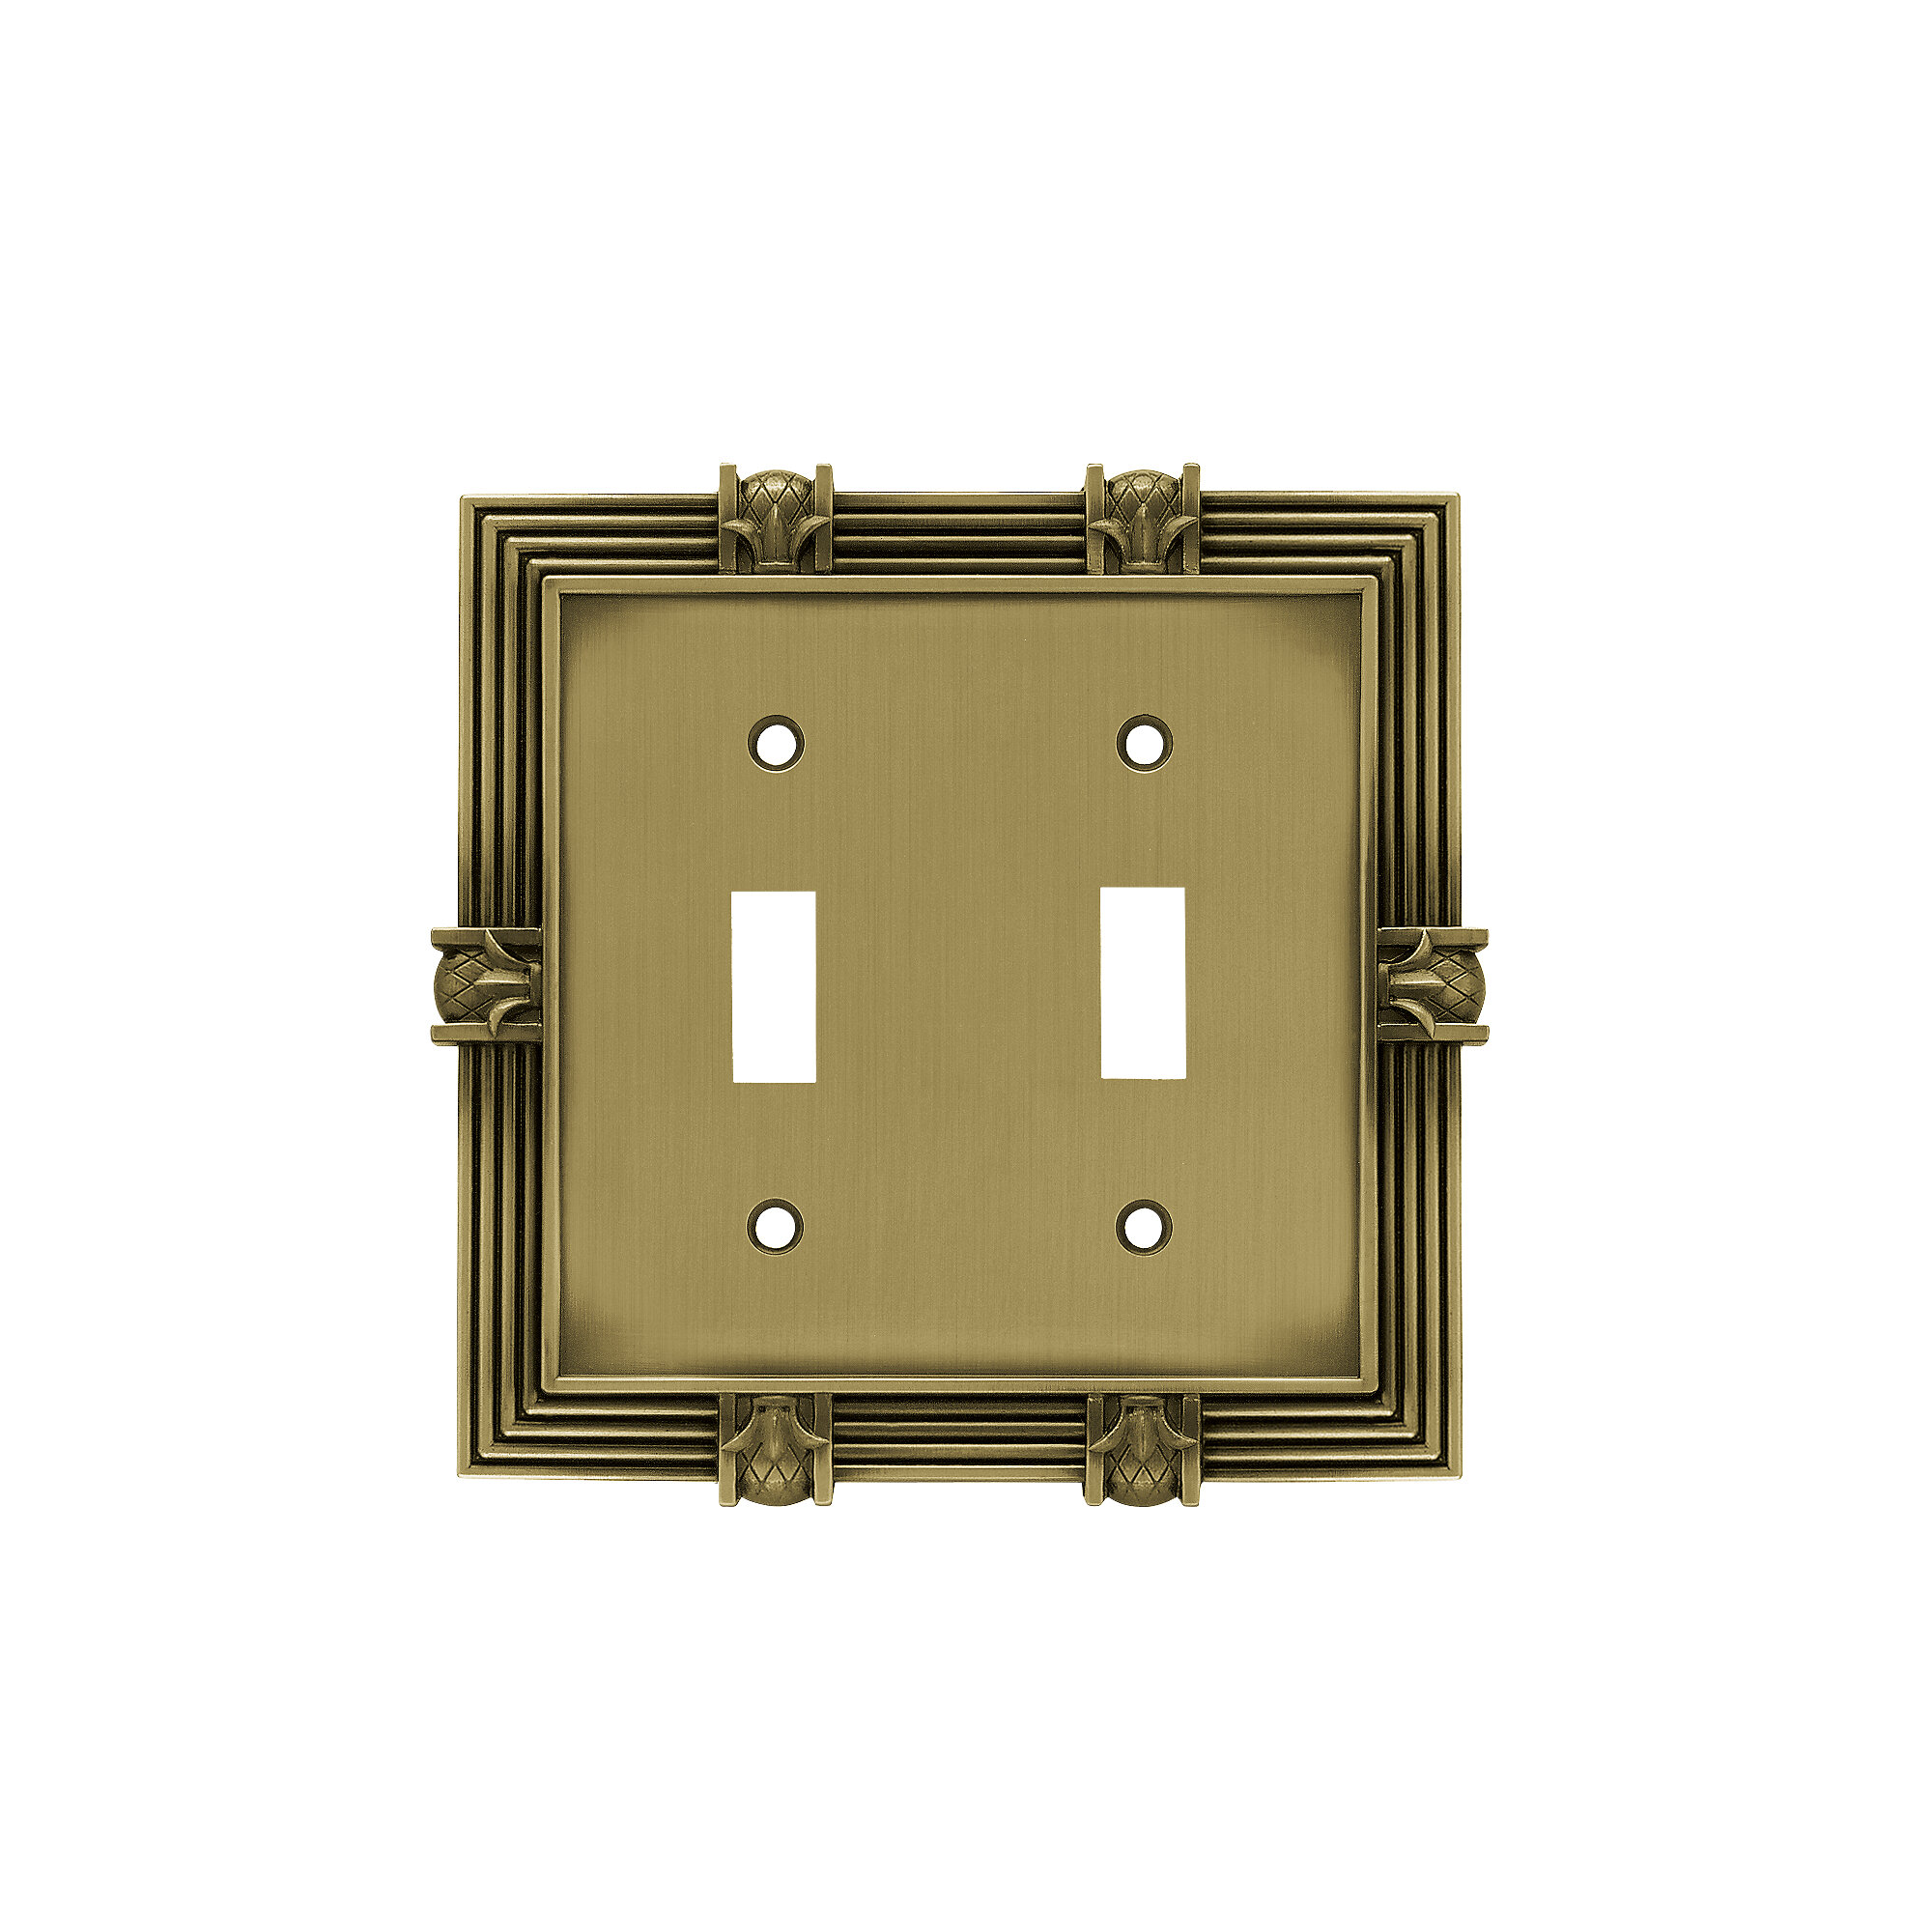 Franklin Brass Pineapple 2 Gang Toggle Light Switch Wall Plate Reviews Wayfair